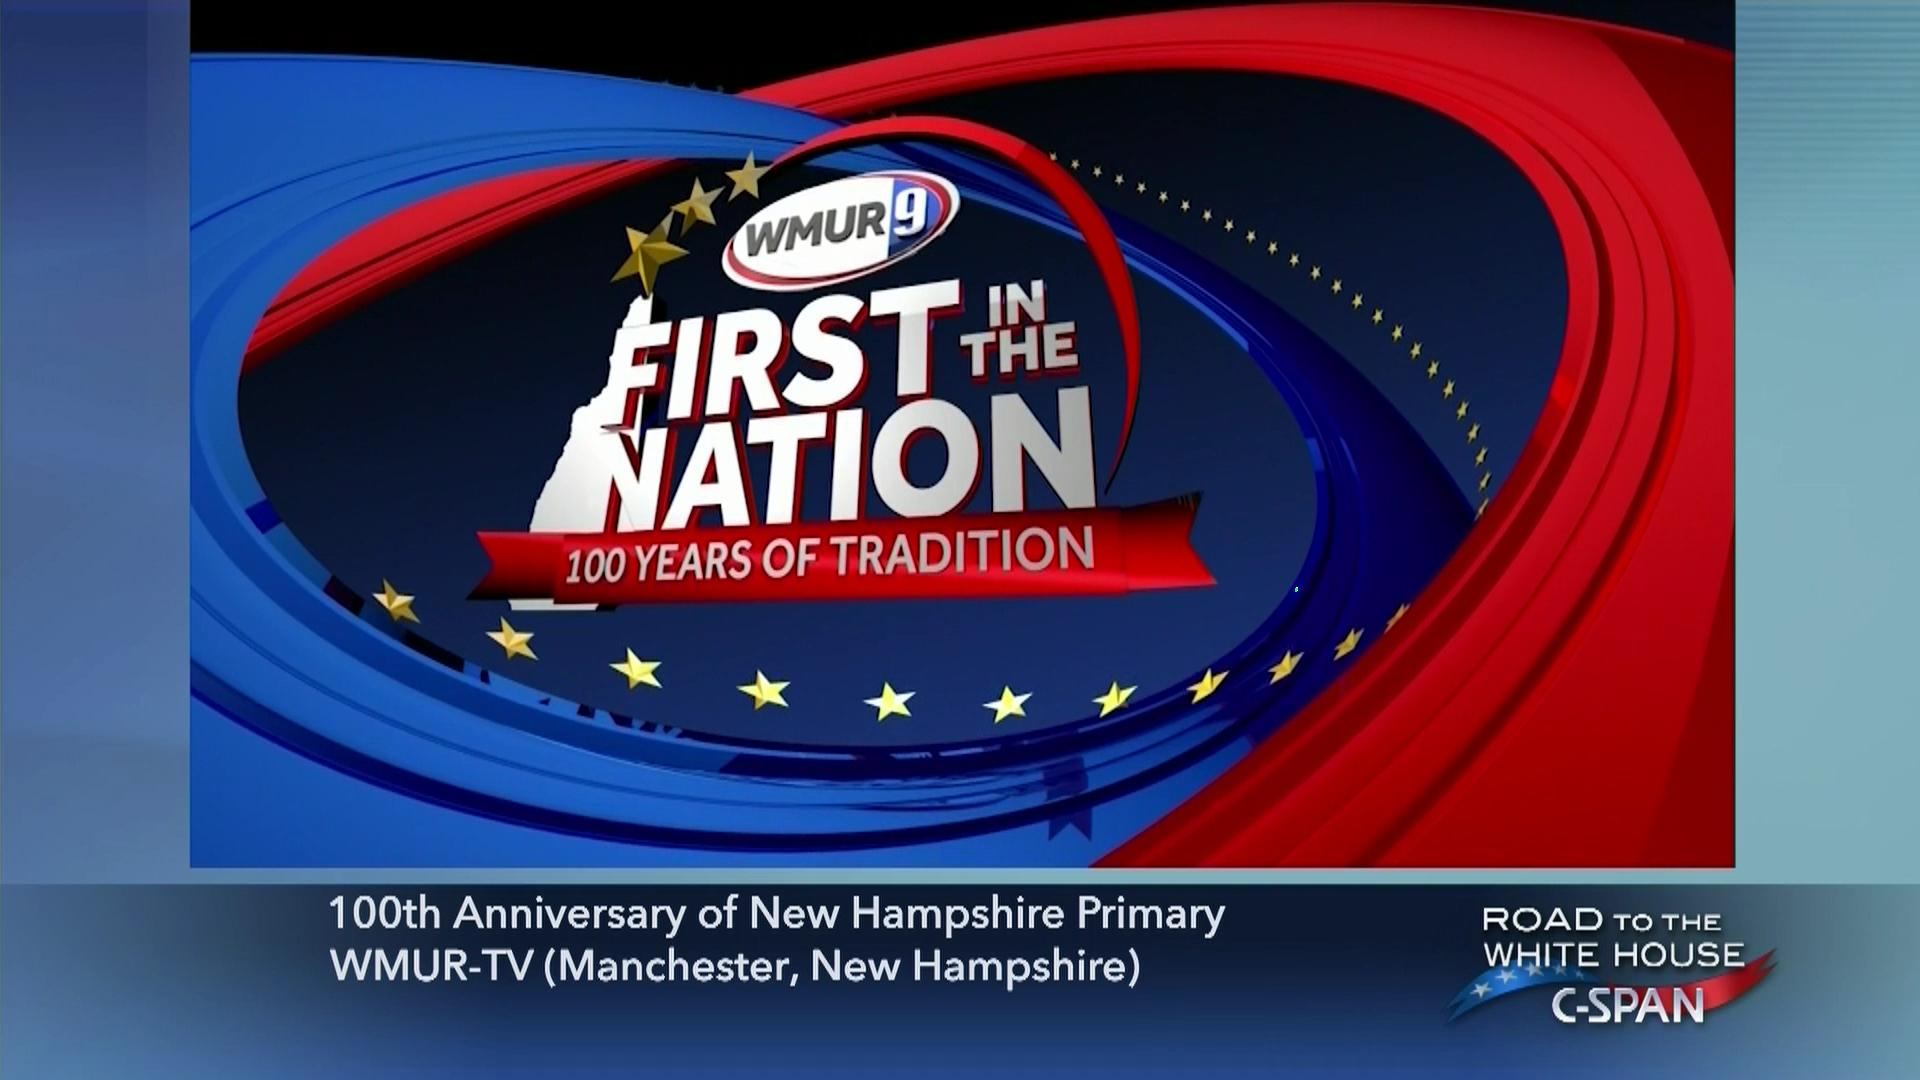 100th Anniversary of the New Hampshire Primary Special